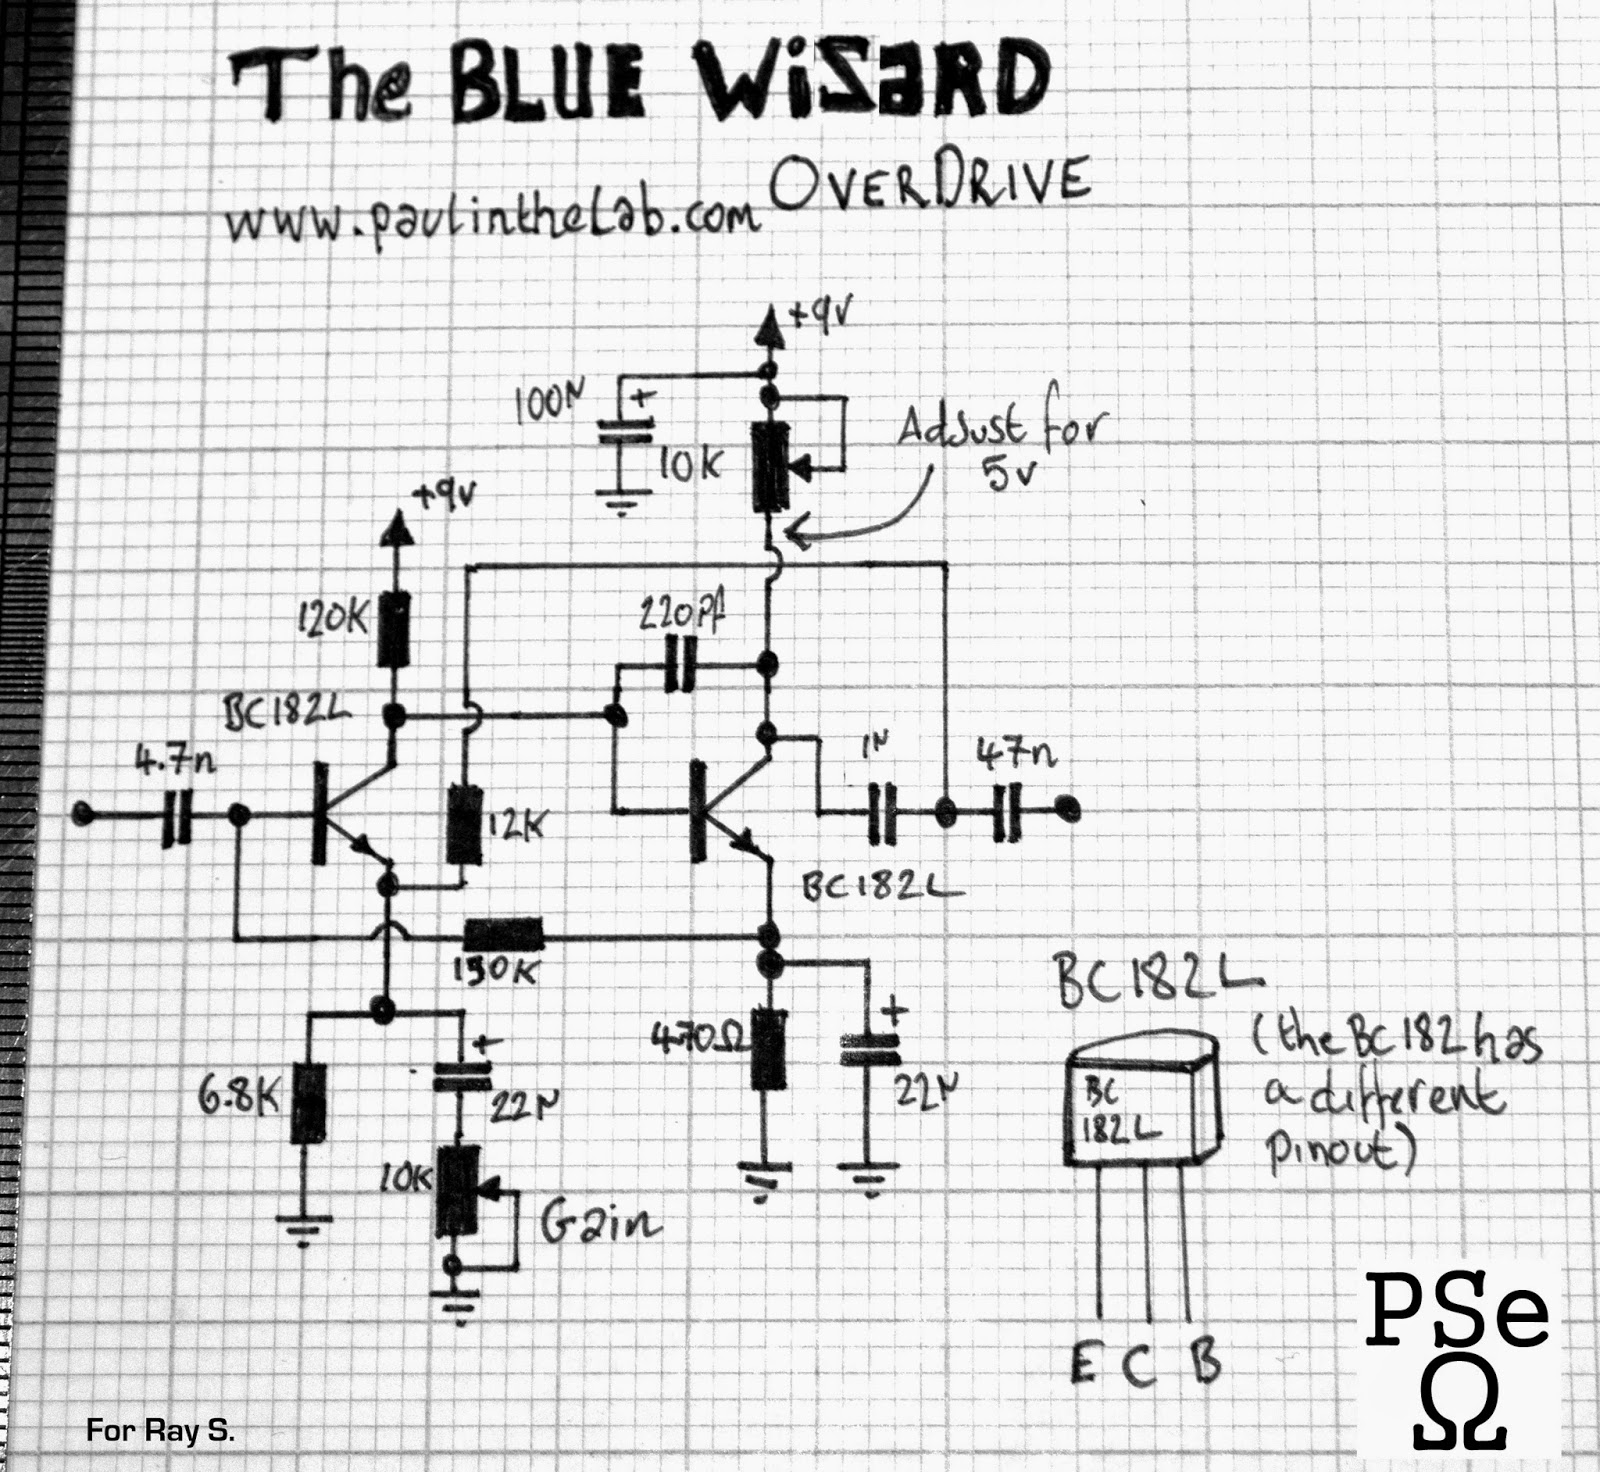 paul in the lab blue wizard overdrive distortion stripboard